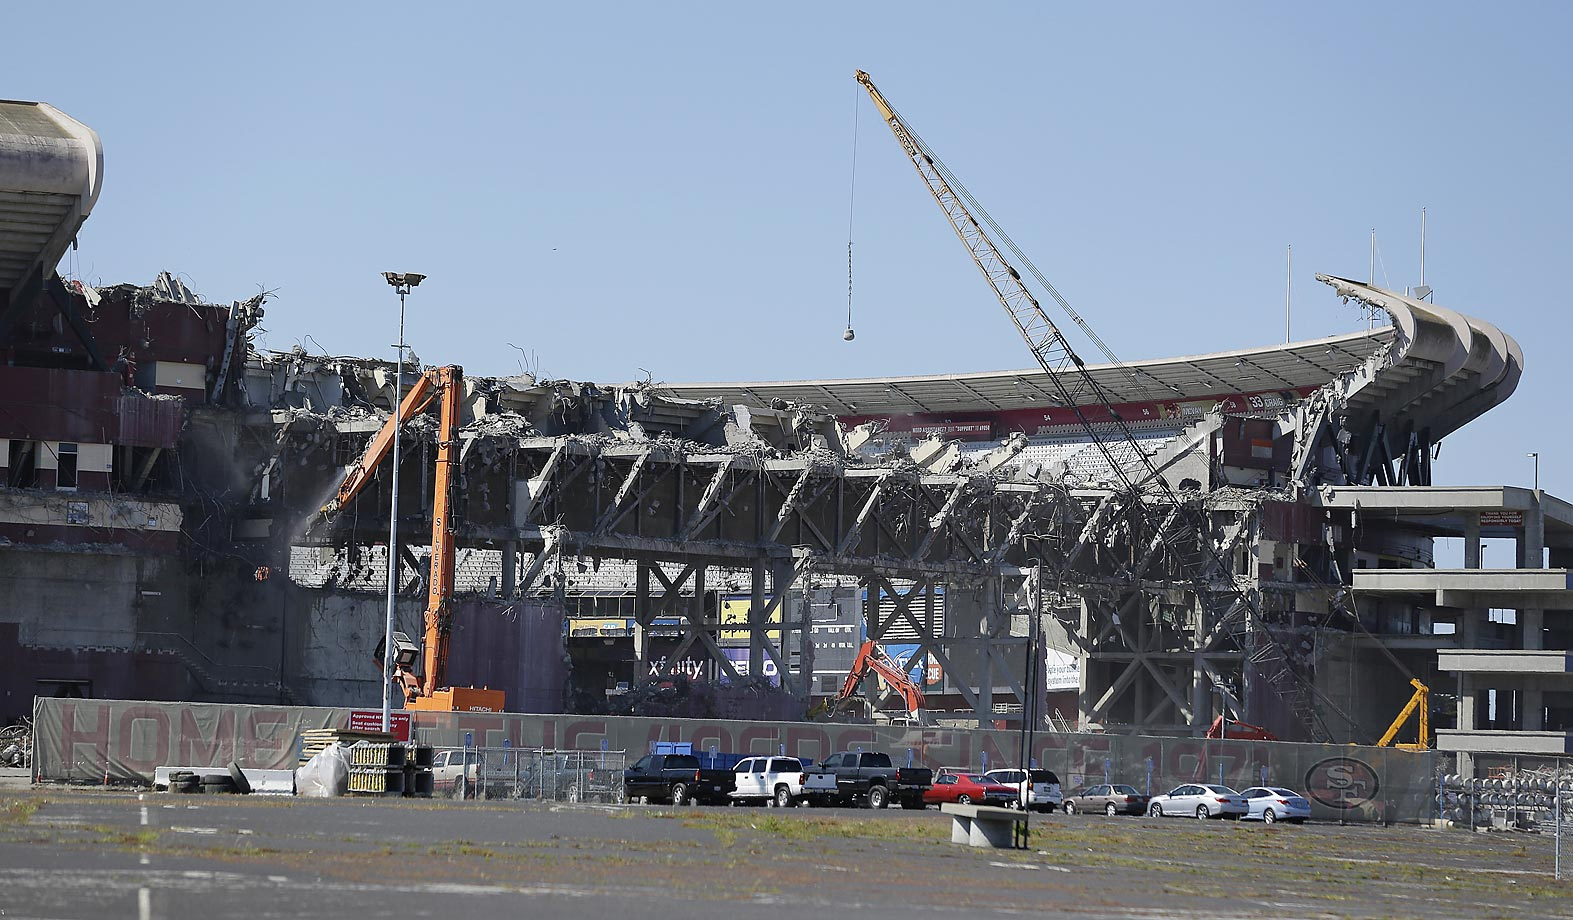 A wrecking ball drops on an upper seating section as demolition continues at Candlestick Park.